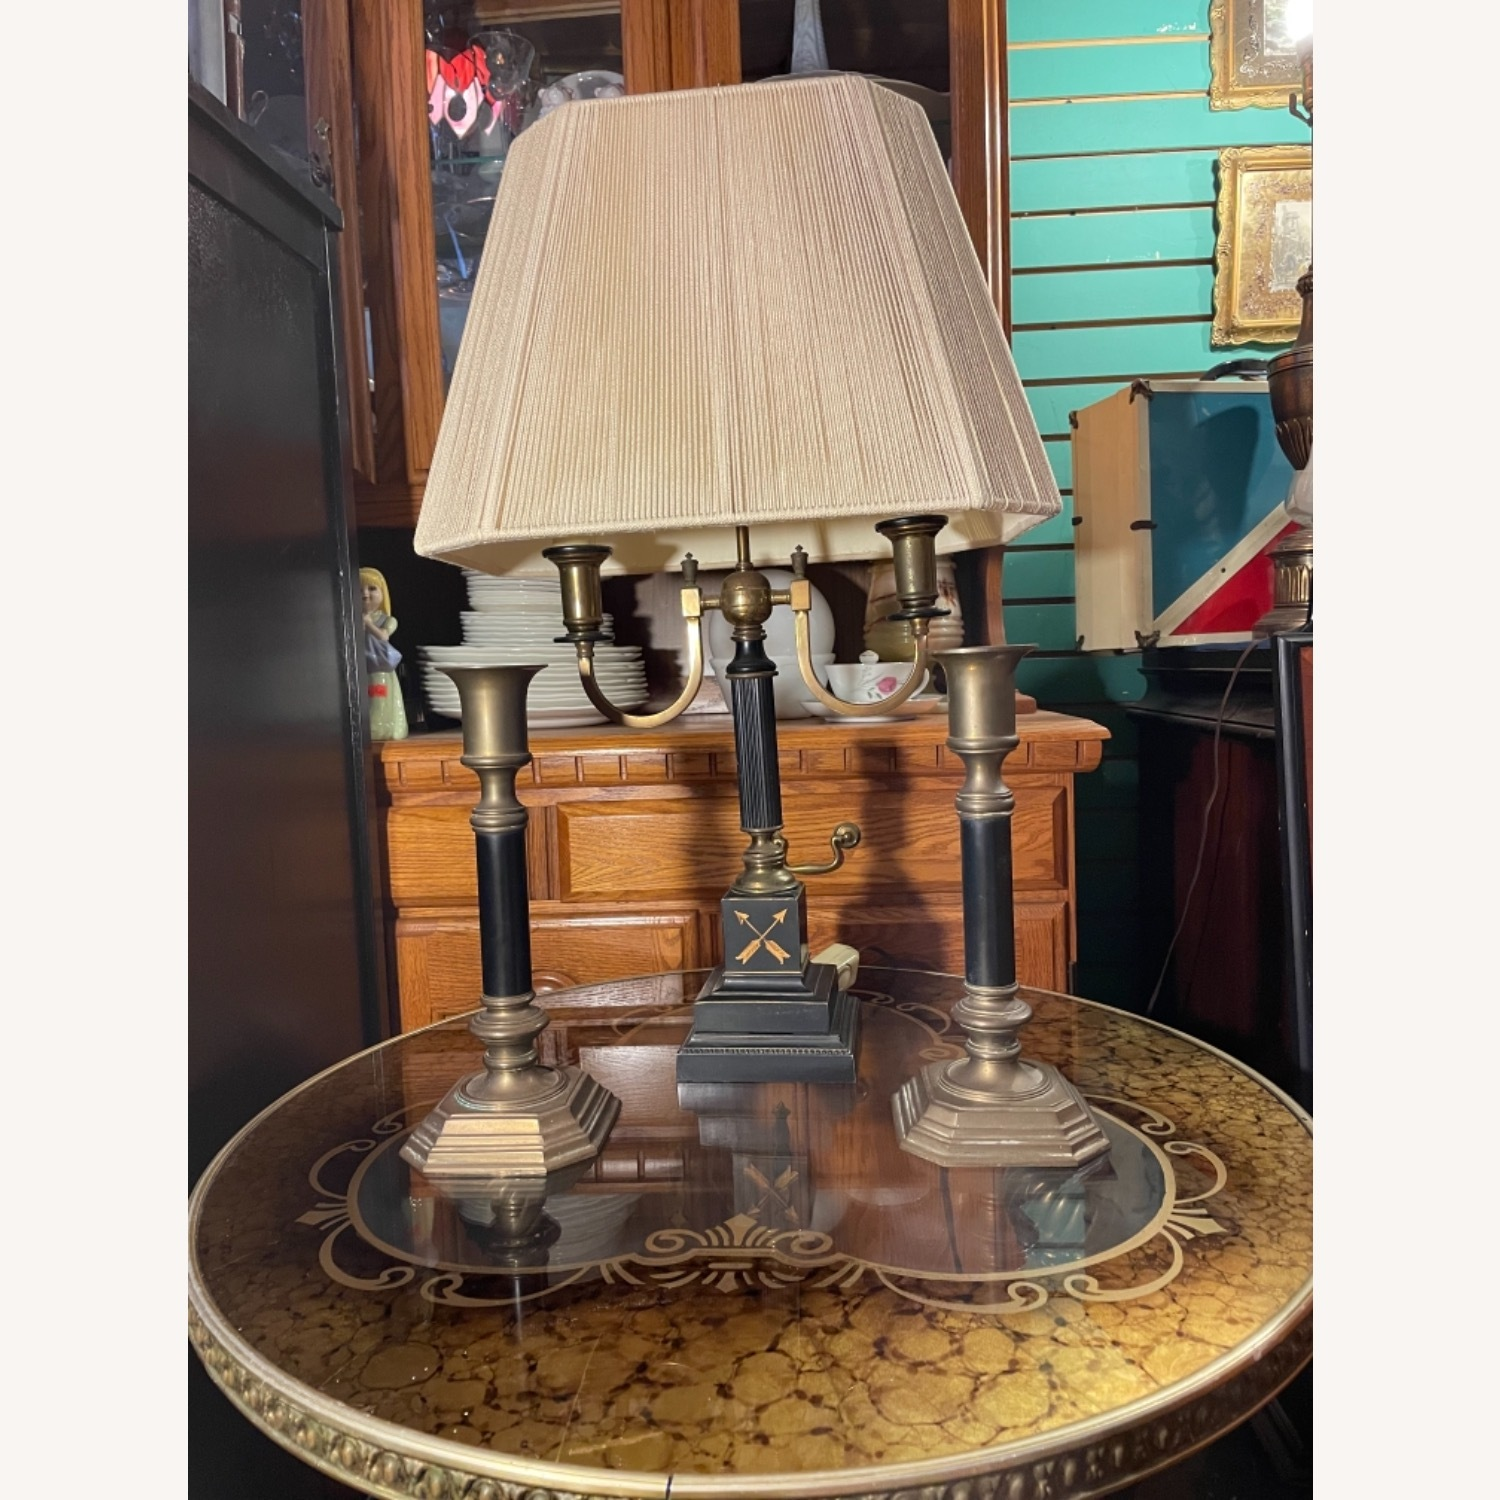 Antique 1930s Set of Brass Candle Sticks & Lamp - image-1